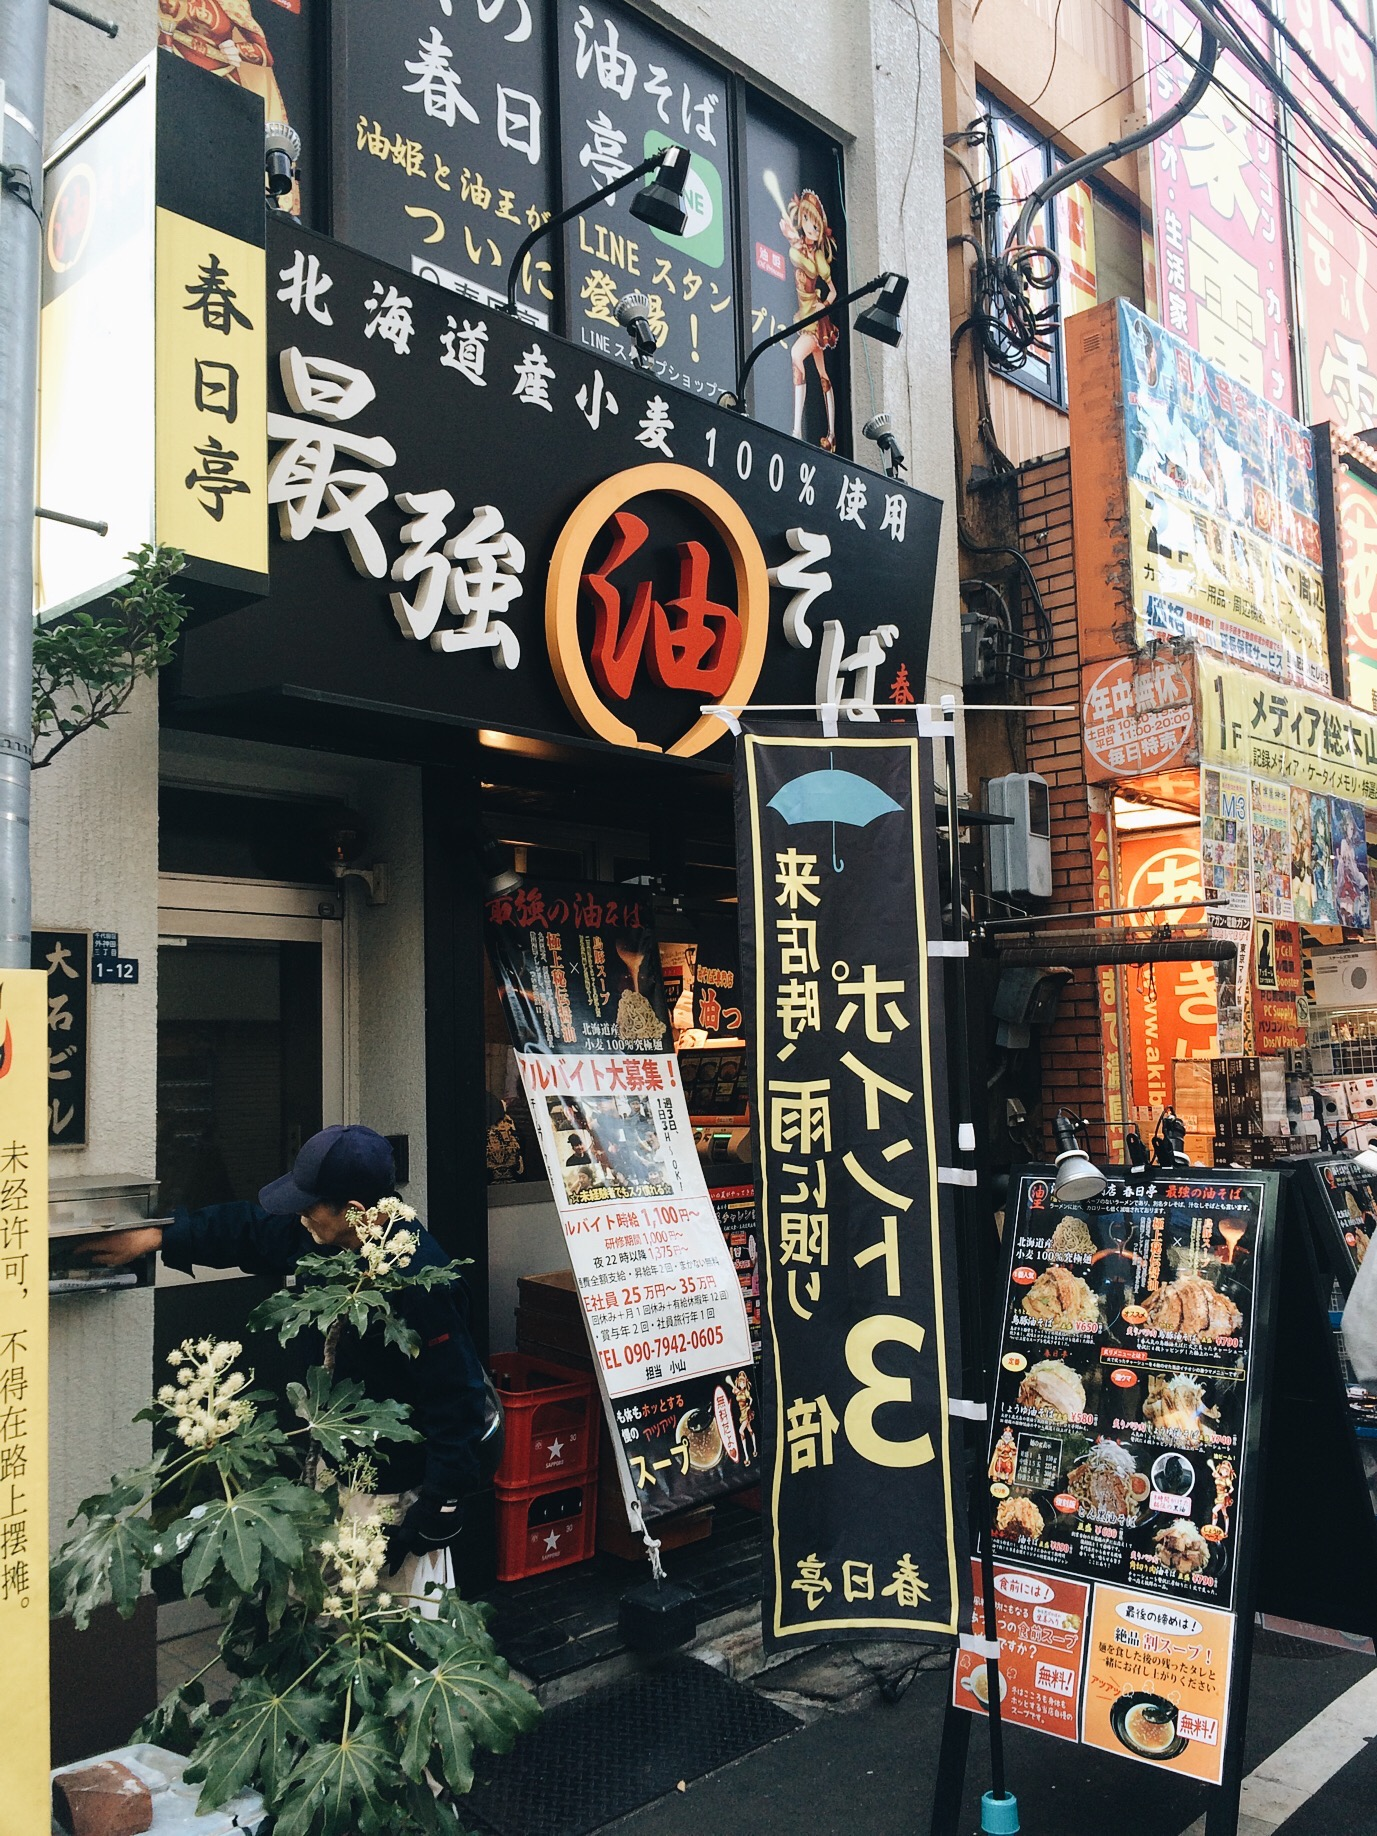 This is the spot, use google translate or find a Japanese friend to translate it for ya.